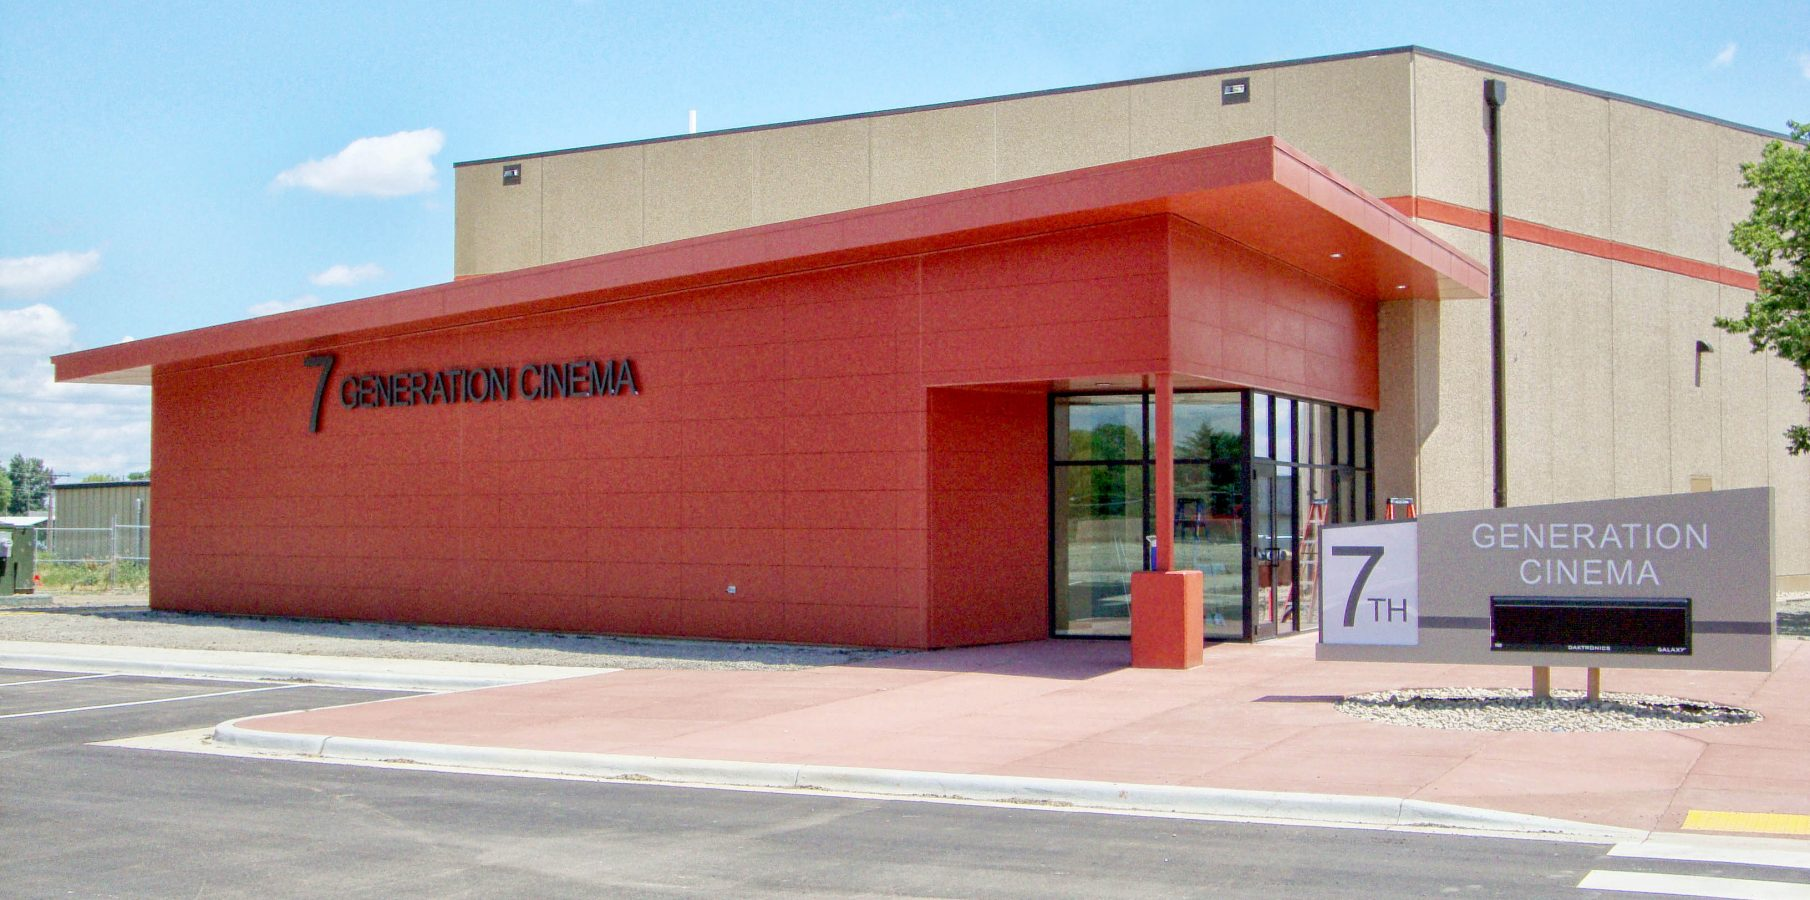 7th Generation Cinema